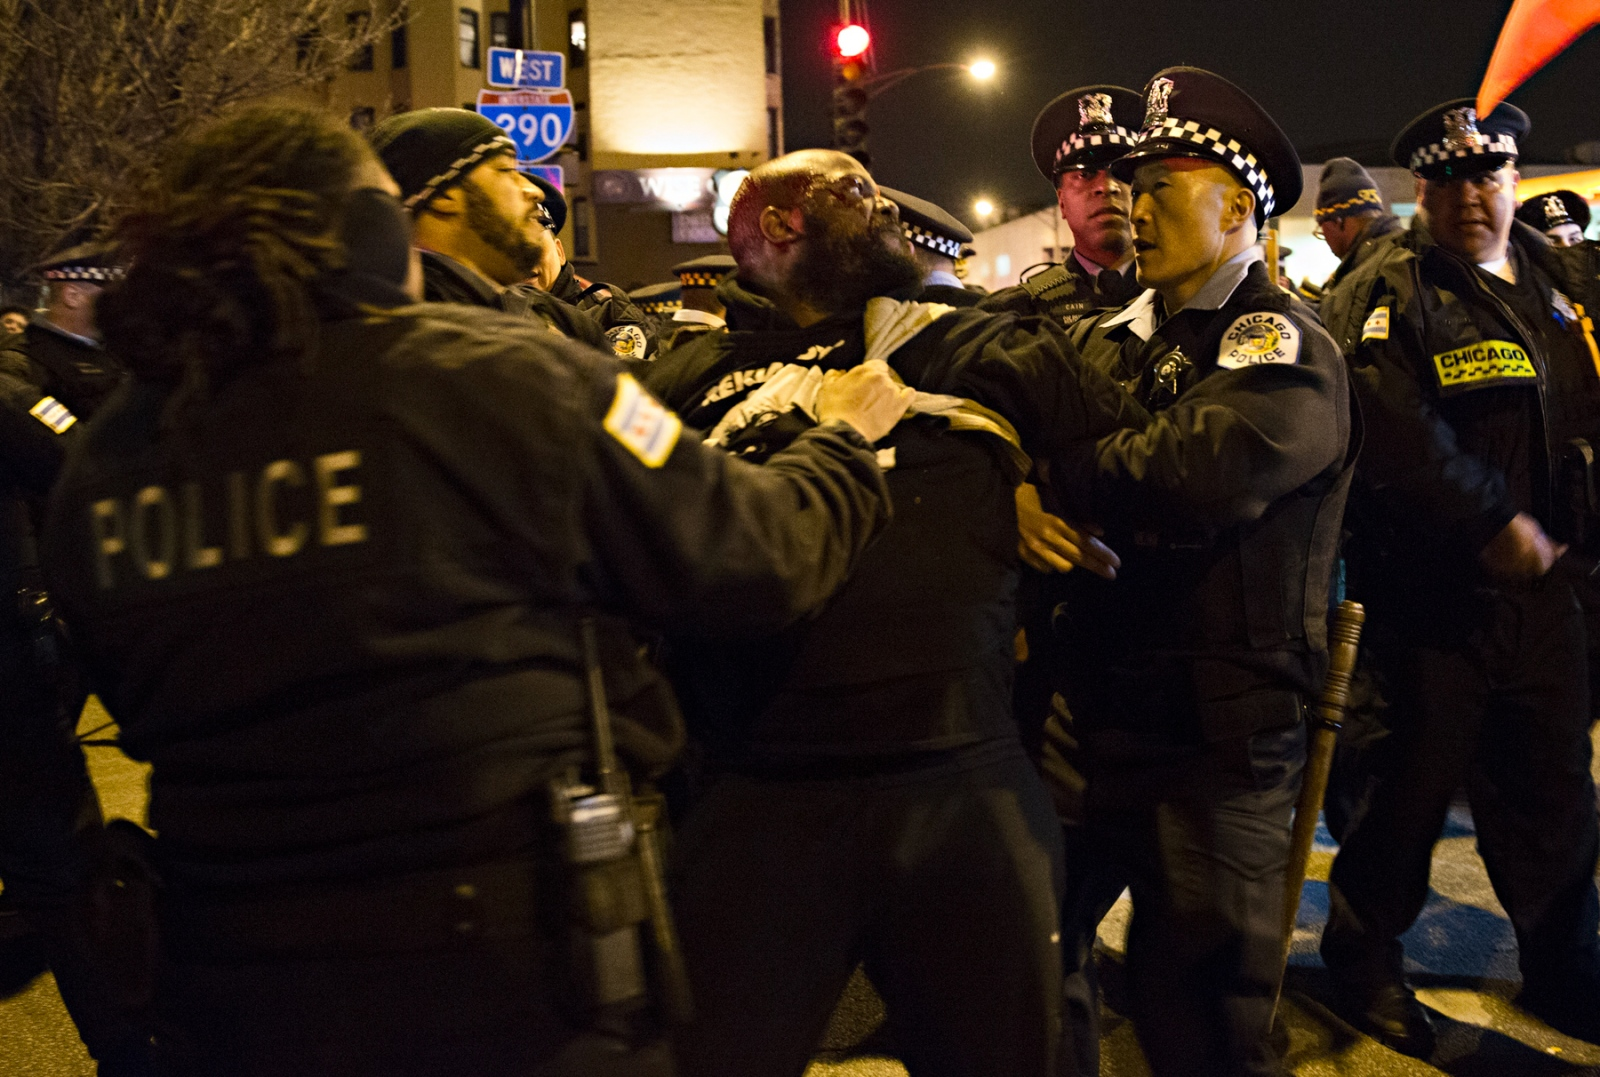 March 11, 2016 - Chicago, Illinois - An anti-Trump protestor is arrested by the Chicago Police Department following unrest resulting from the planned appearance of Donald Trump in Chicago. Due to the intensity of the protests and the UIC students' infiltration of the Pavilion, concerned about his security Trump cancelled his appearance.